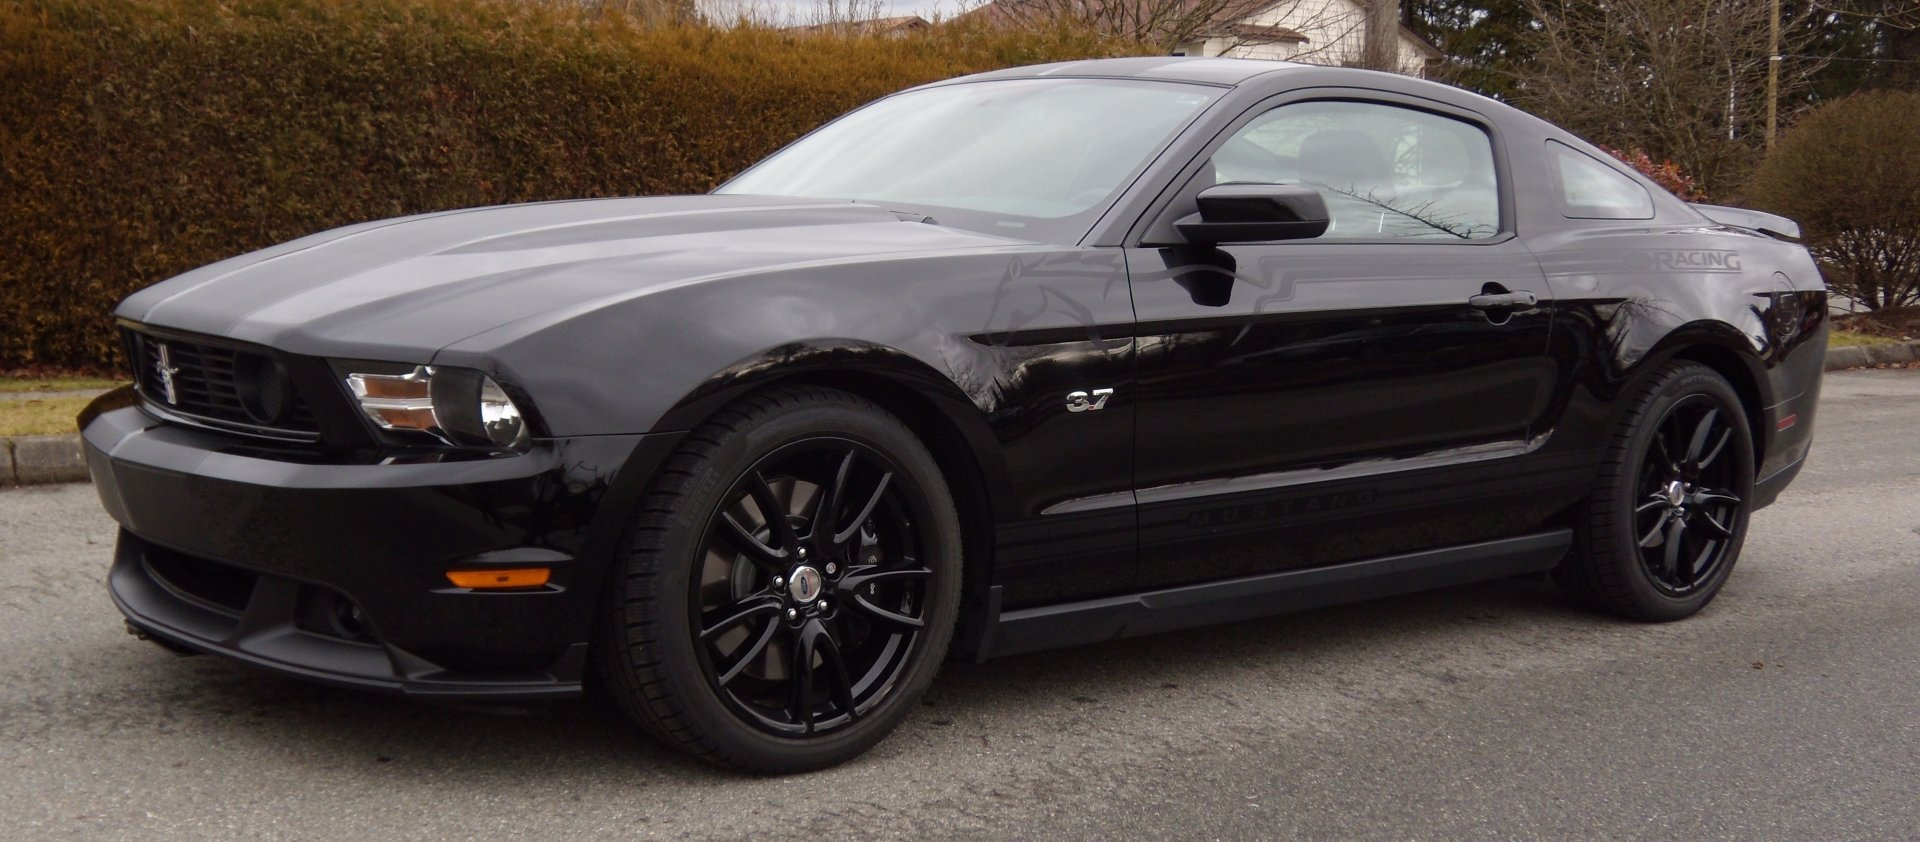 black wheels for my mustang pictures please ford mustang forum. Black Bedroom Furniture Sets. Home Design Ideas